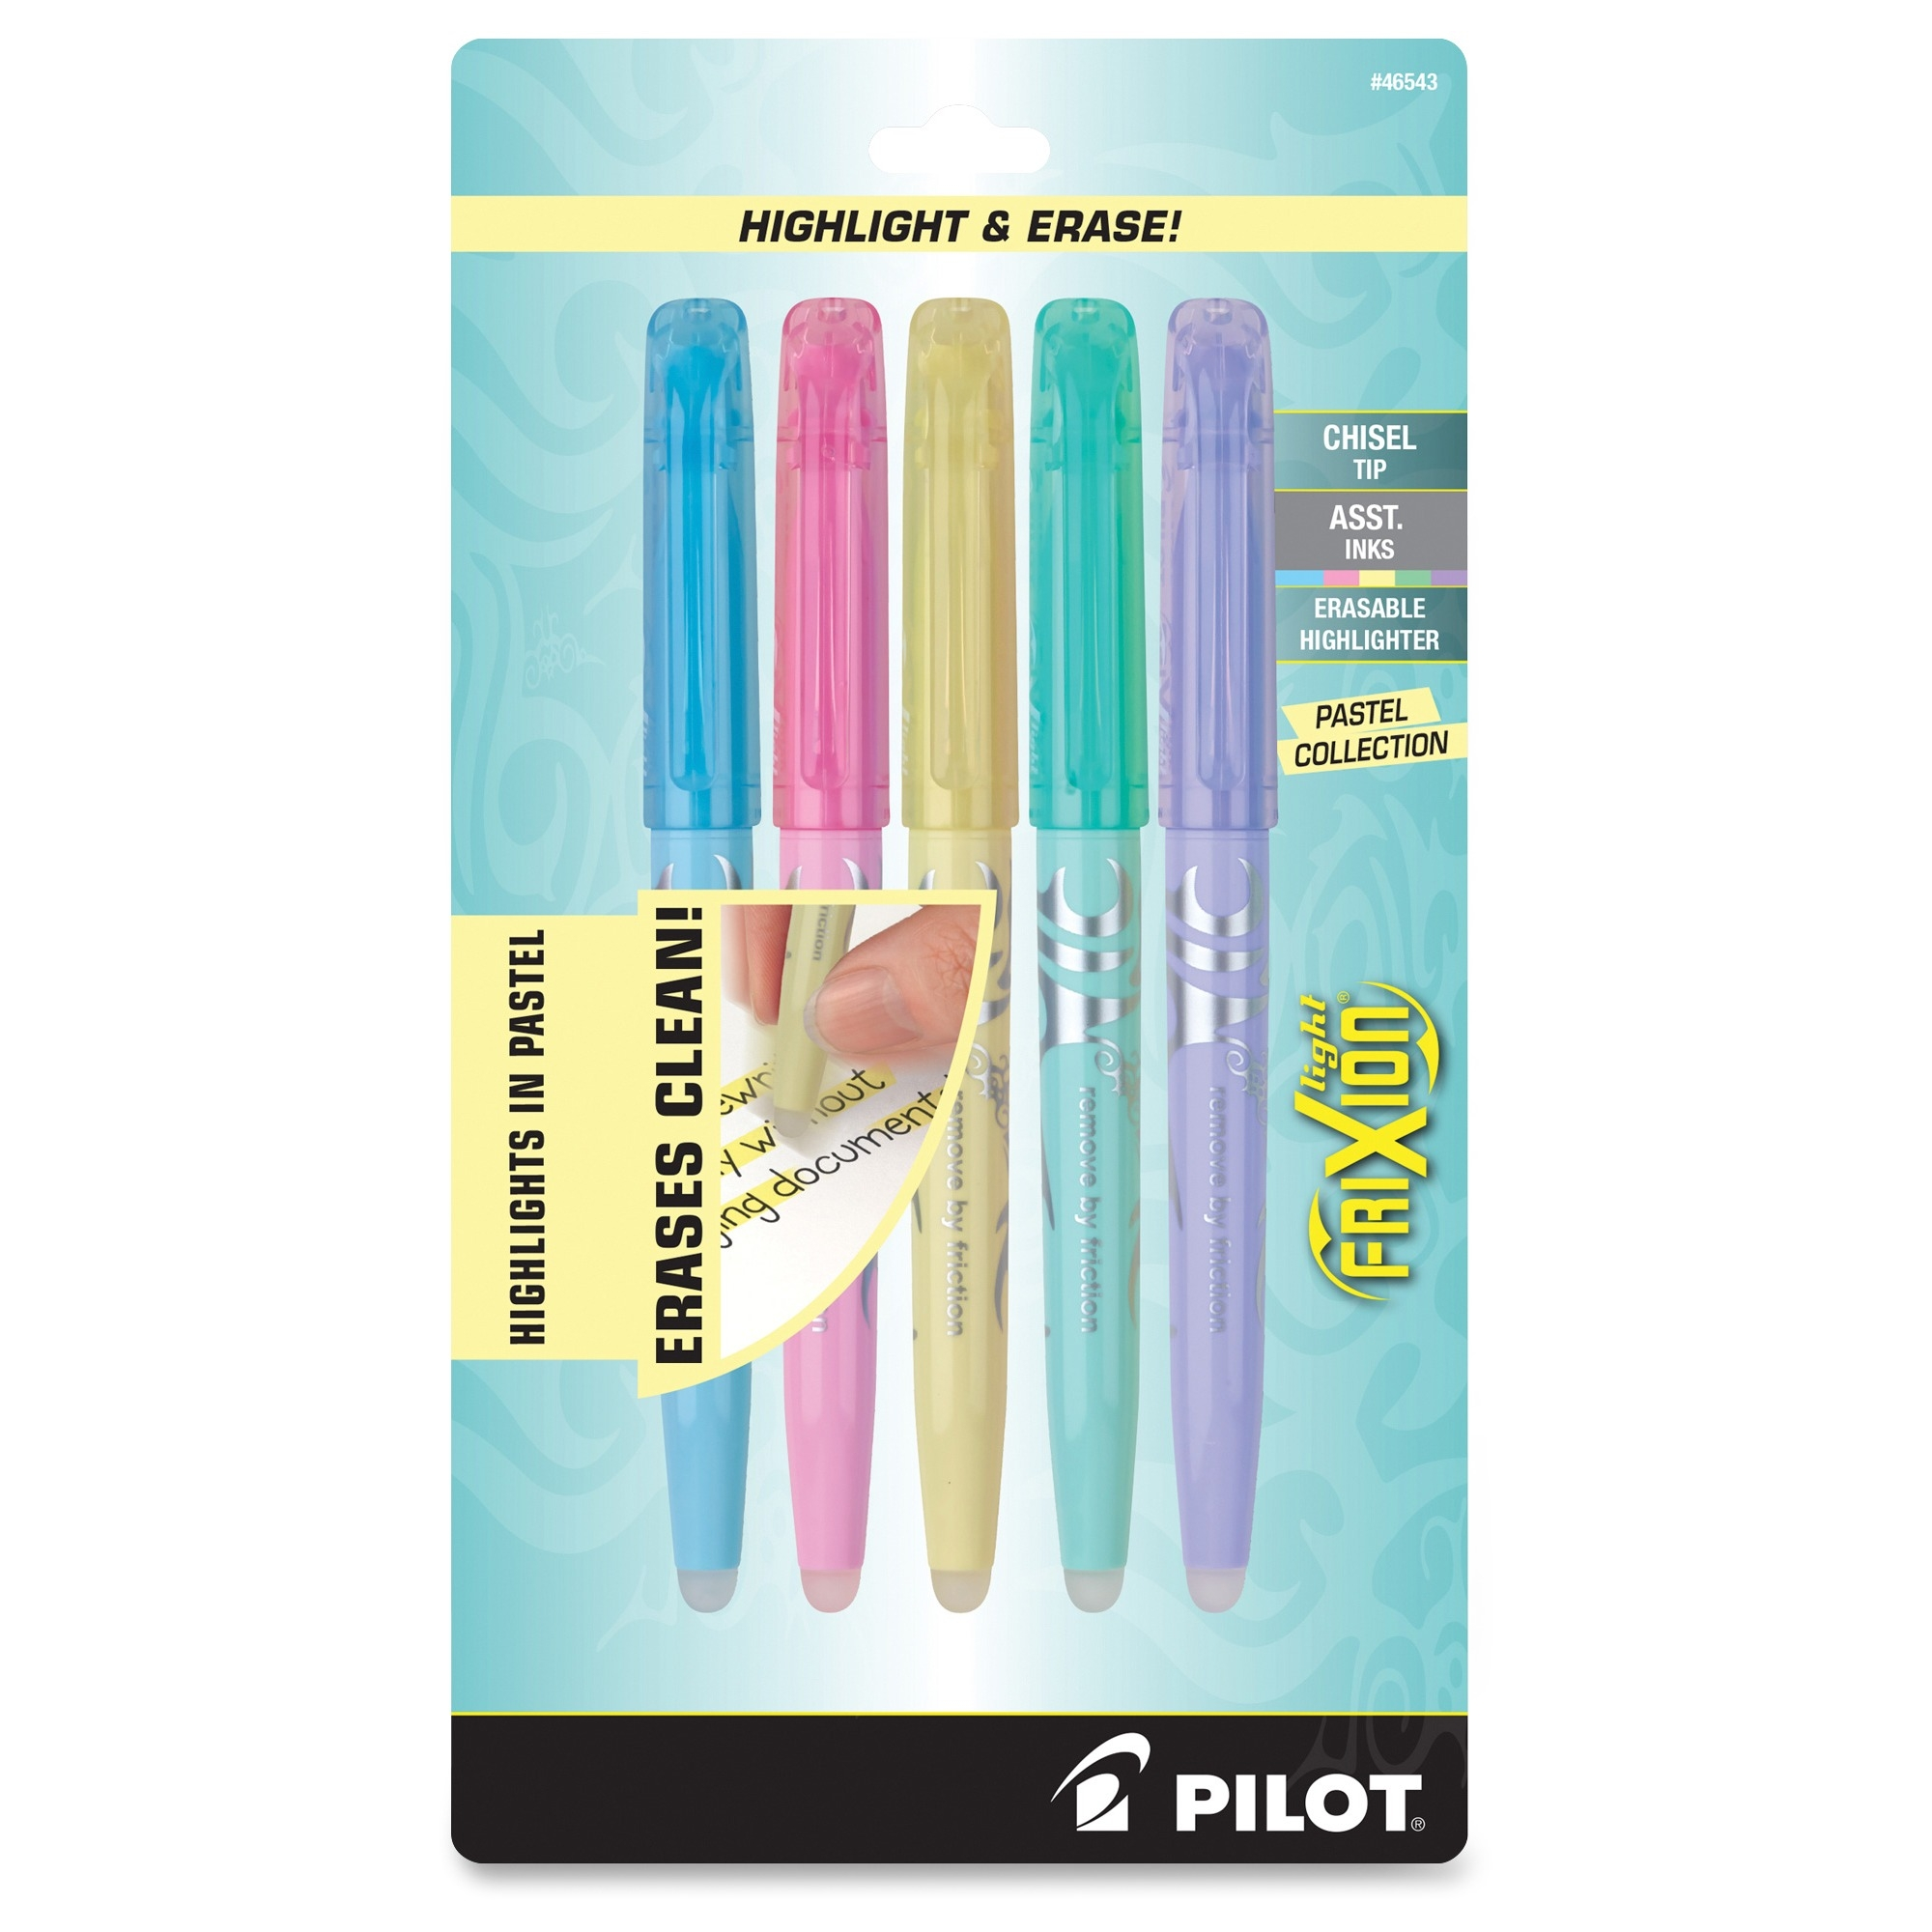 Frixion Light Pastel Erasable Highlighters - Chisel Marker Point Style - Yellow, Pink, Green, Purple, Blue Ink - 5 / Pack (pil-46543)